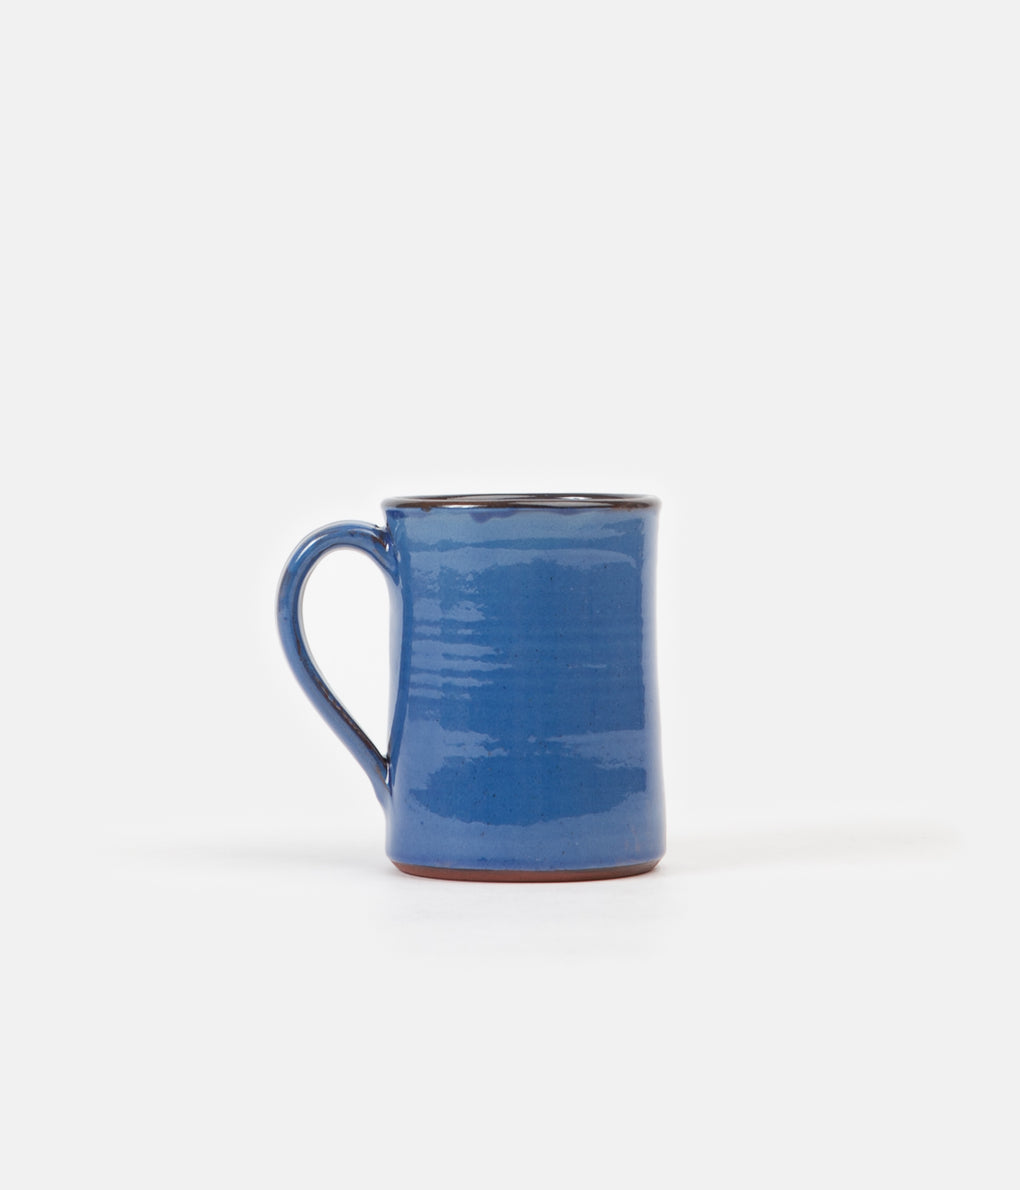 Tender Coffee Mug - Blue